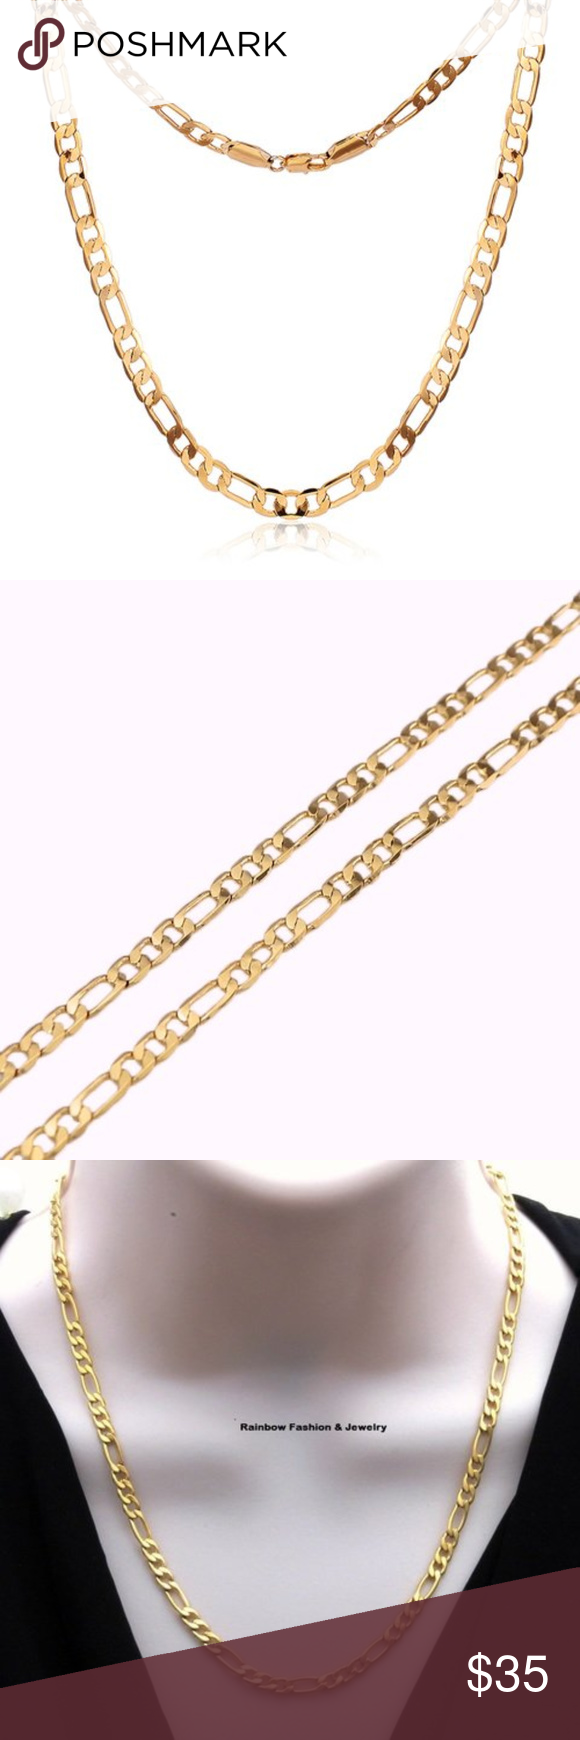 18k Gold Plated Italy 5mm Figaro Chain Necklace Chain Necklace Figaro Chain Necklace Necklace Types